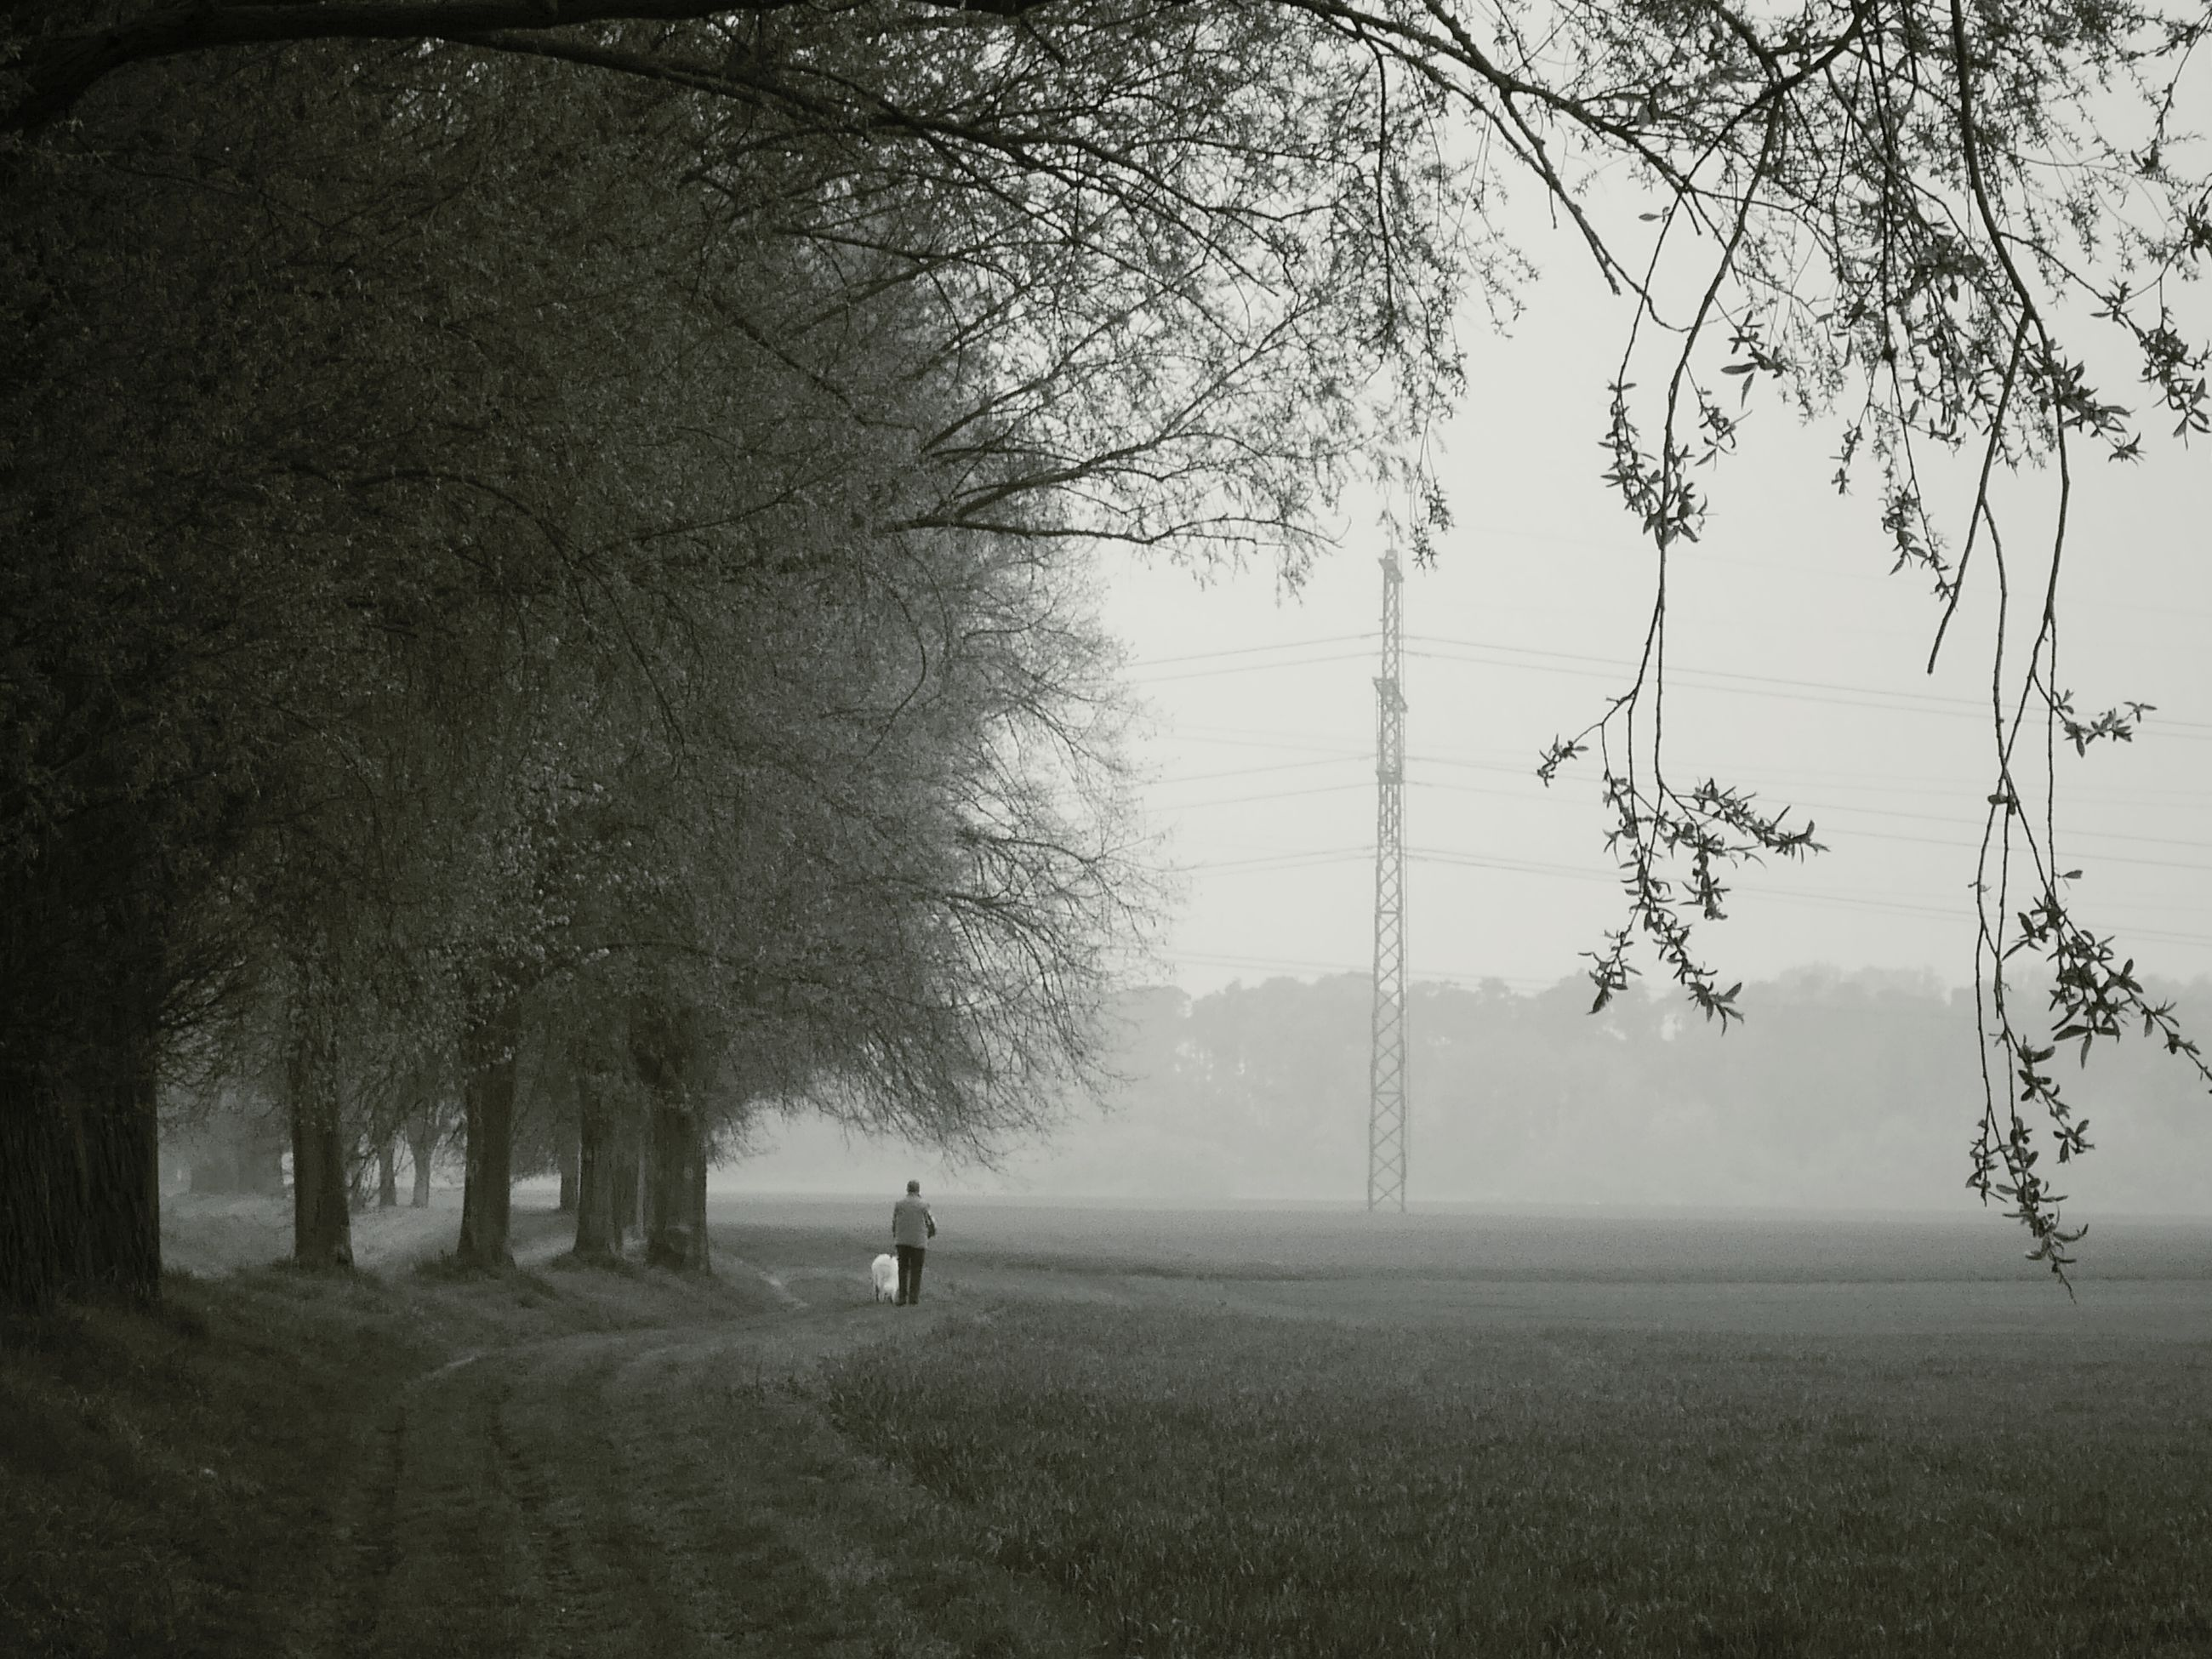 tree, field, fog, landscape, bare tree, tranquility, tranquil scene, grass, foggy, nature, growth, branch, scenics, beauty in nature, weather, silhouette, sky, grassy